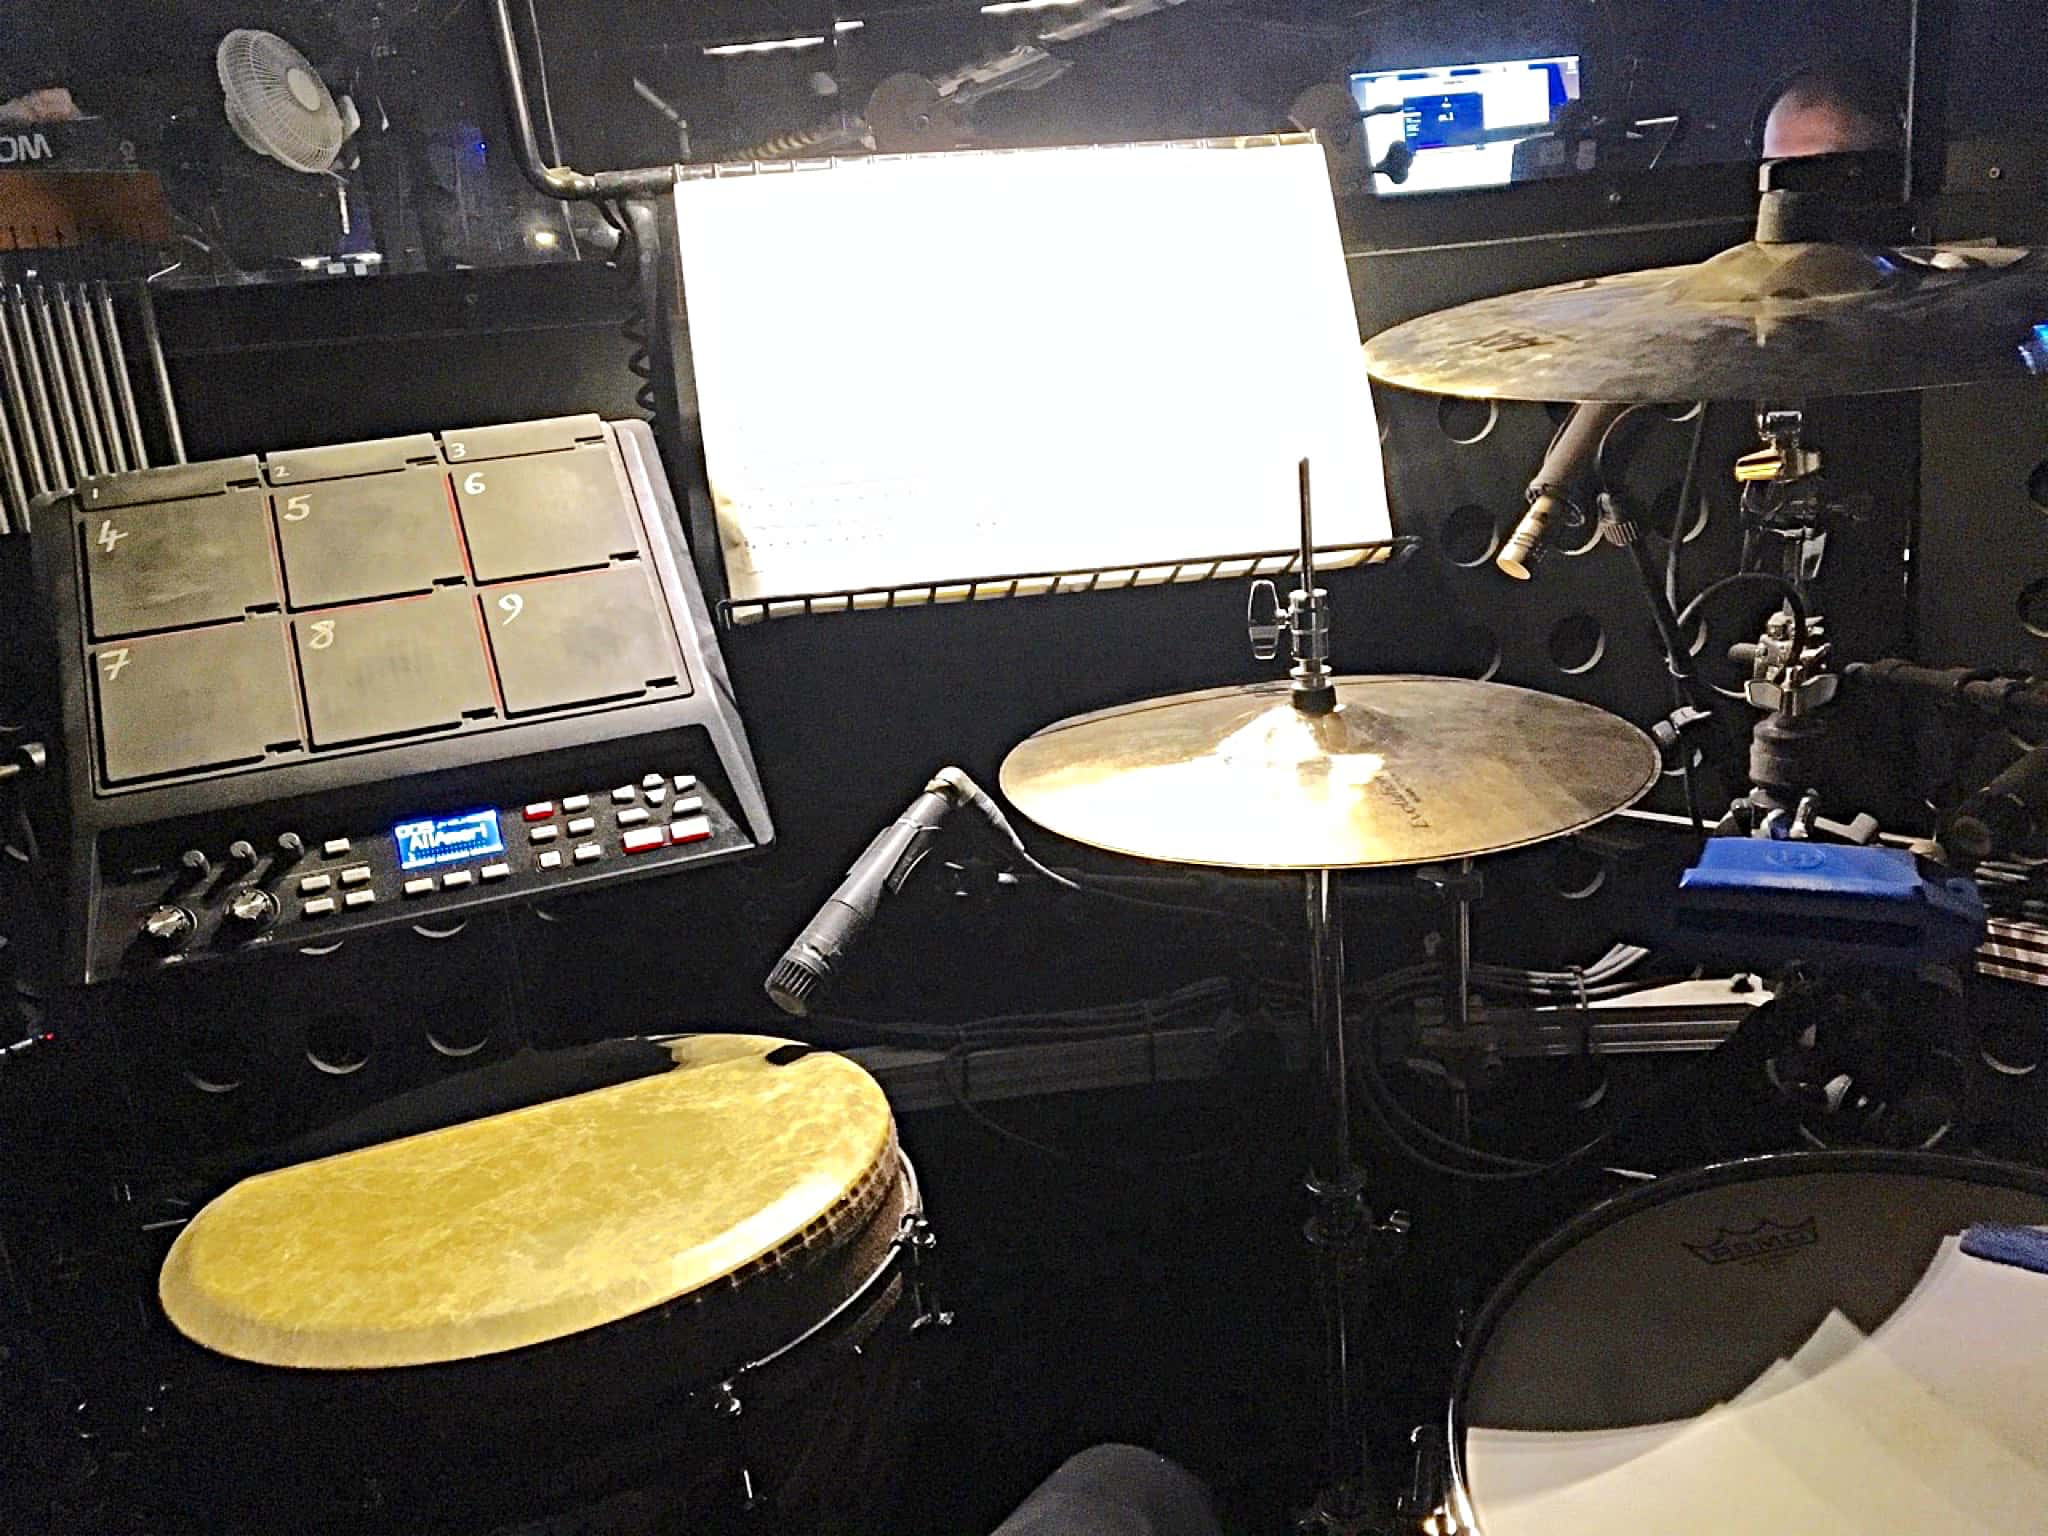 Tim Goodyer's drum set setup for The Book of Mormon at the Prince of Wales Theatre in London's West End.